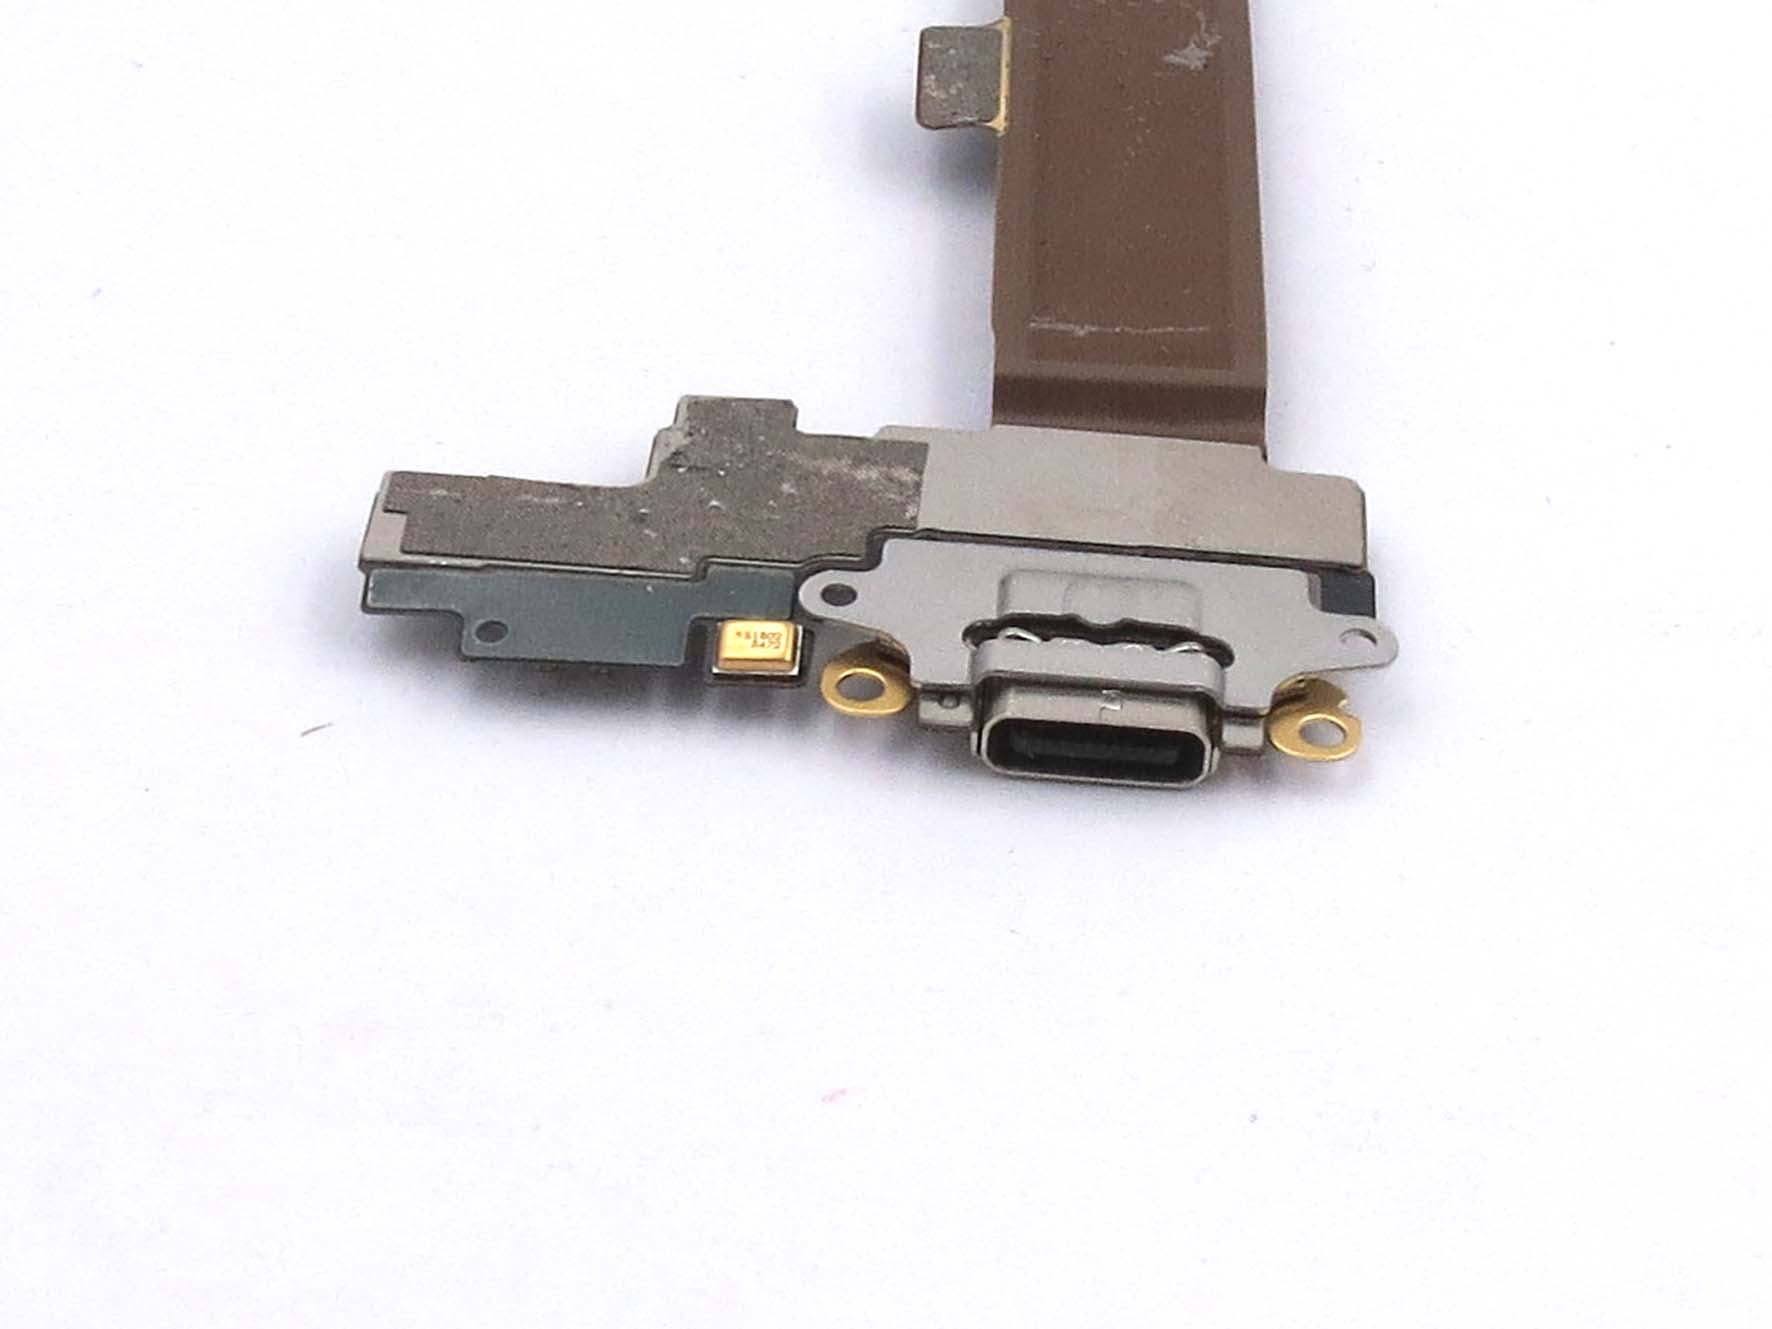 Dock Connector Type c USB Charger Charging Port Microphone Flex Cable for Xiaomi Note 2